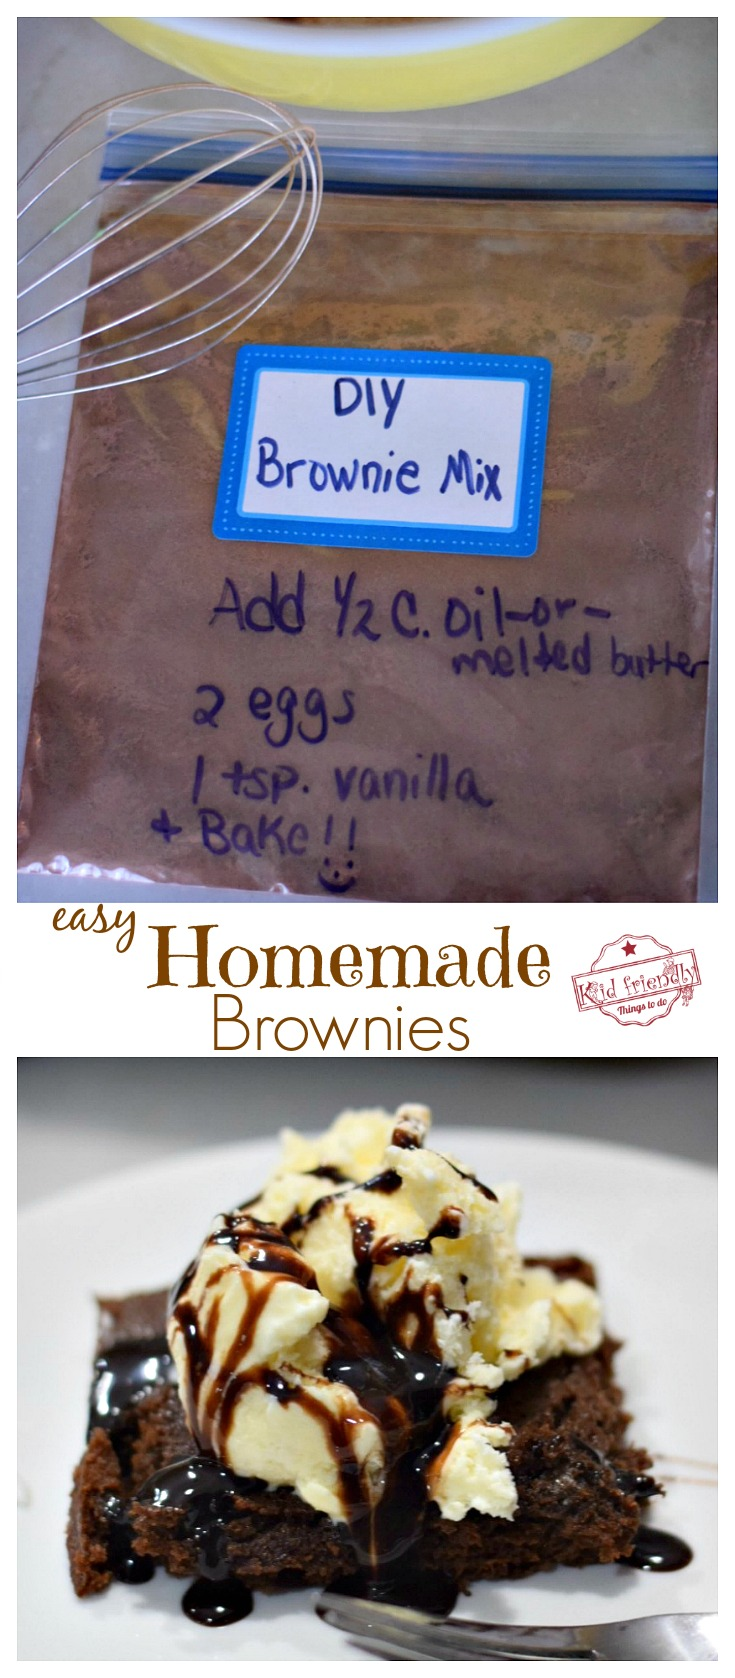 Easy Homemade Brownies Recipe - Make your own Easy Brownie Mix with a few simple ingredients. These are the best! Never buy boxed brownies again! - www.kidfriendlythingstodo.com